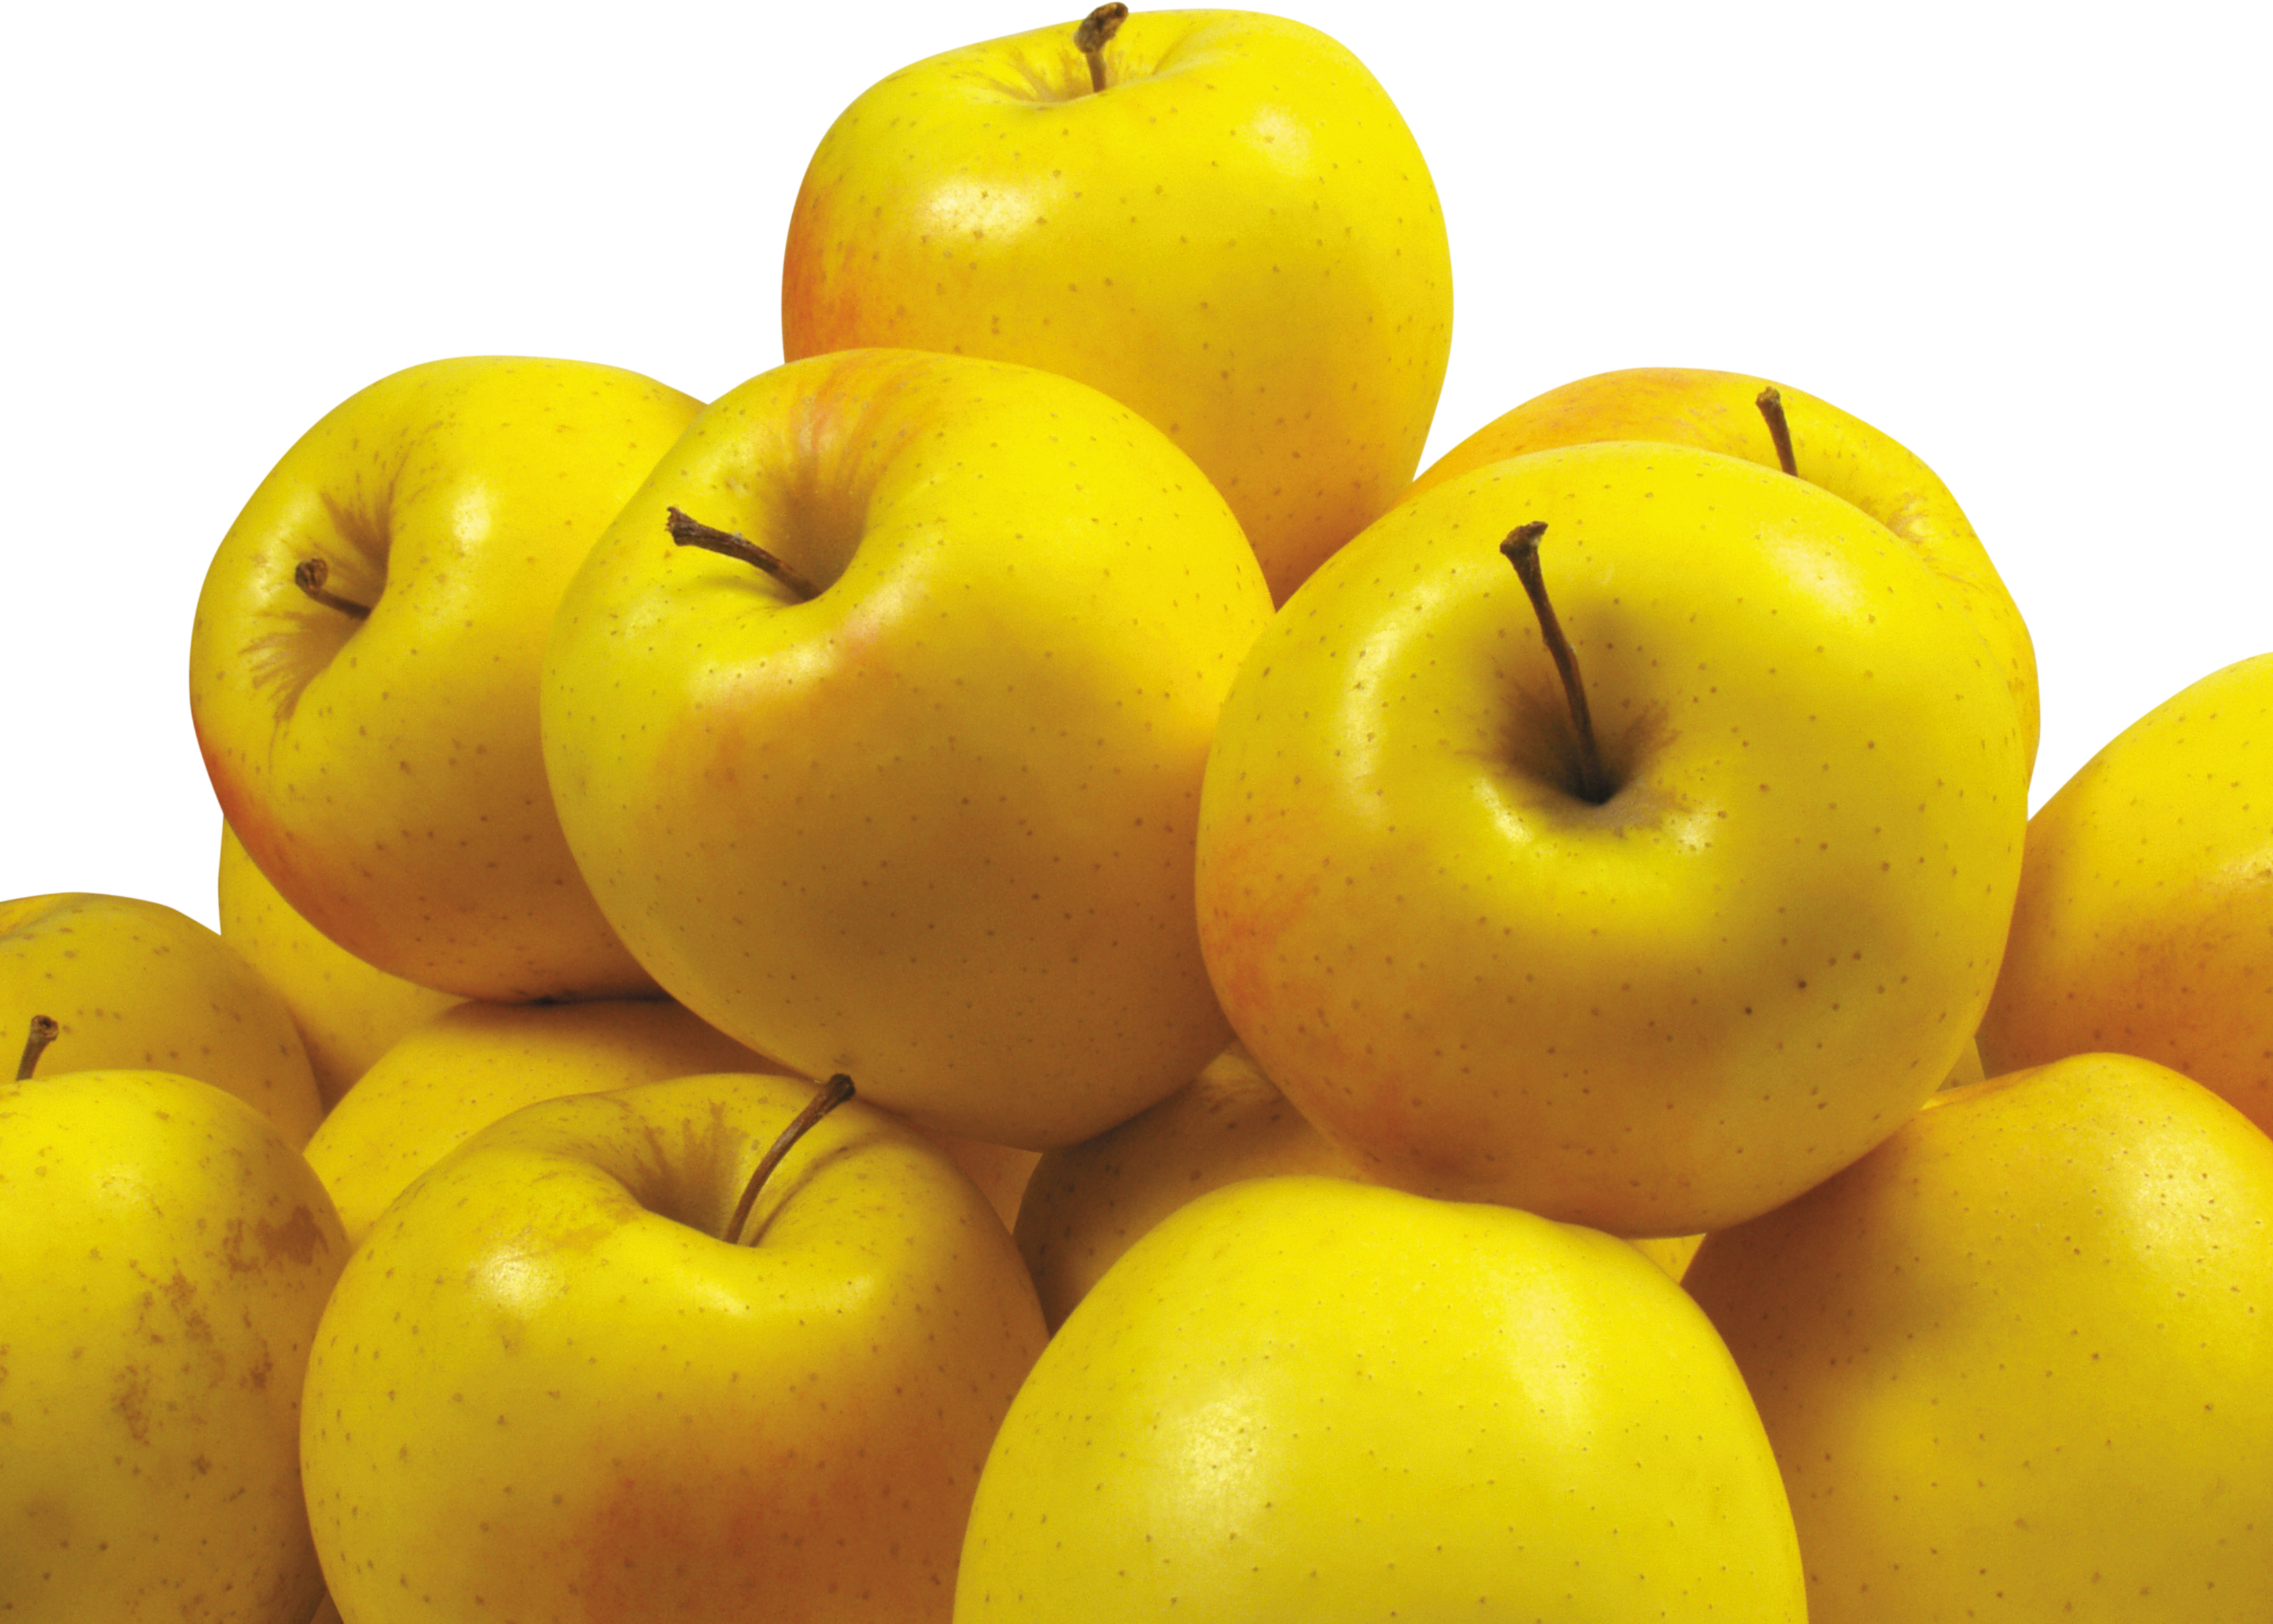 Transparent yellow apples clipart - Yellow Apple's - Yellow Apples Png